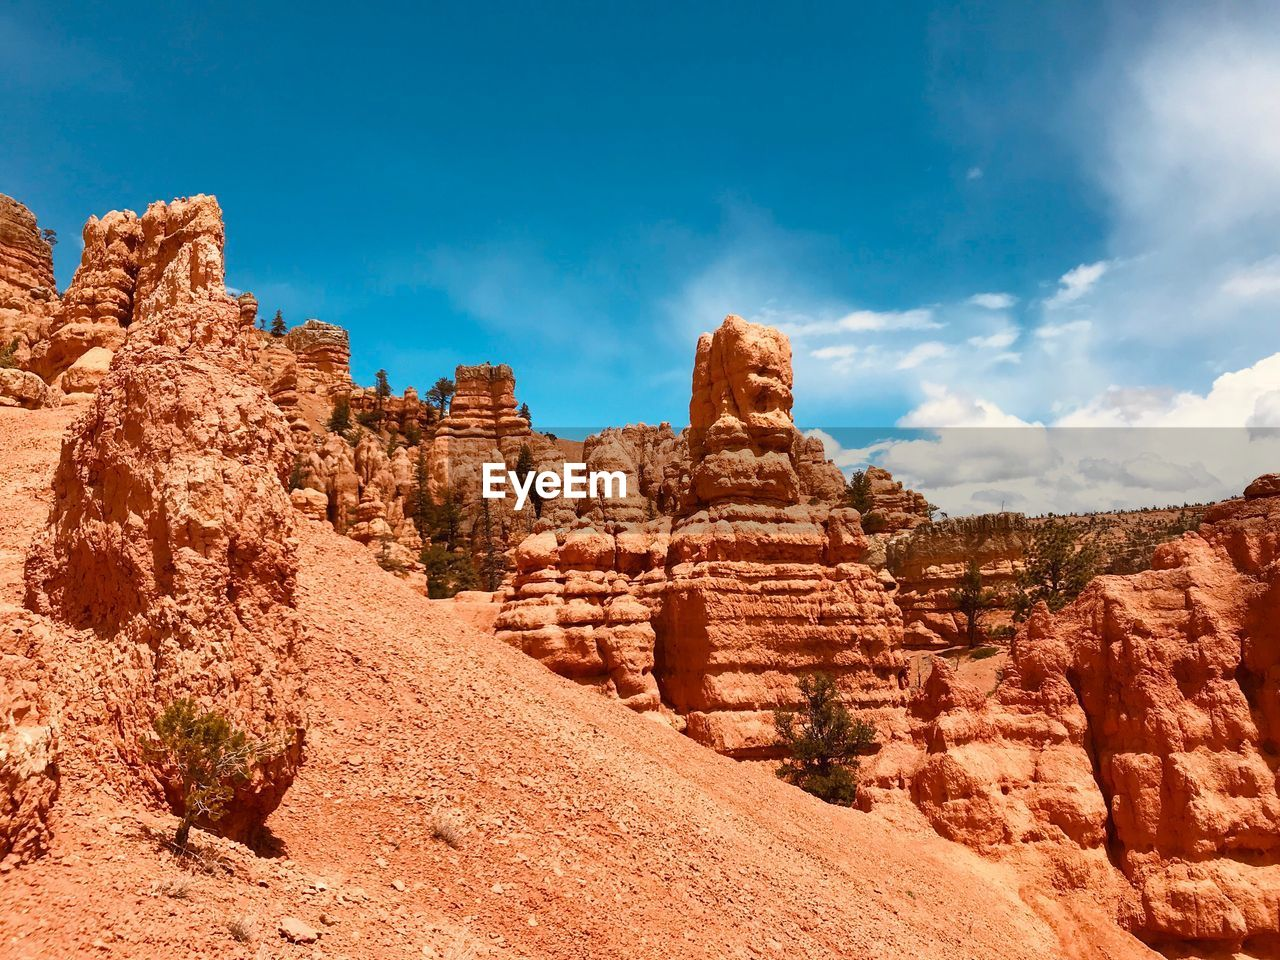 sky, cloud - sky, rock formation, solid, rock, rock - object, tranquil scene, geology, scenics - nature, non-urban scene, no people, tranquility, physical geography, beauty in nature, nature, travel destinations, day, travel, environment, landscape, outdoors, eroded, climate, arid climate, formation, sandstone